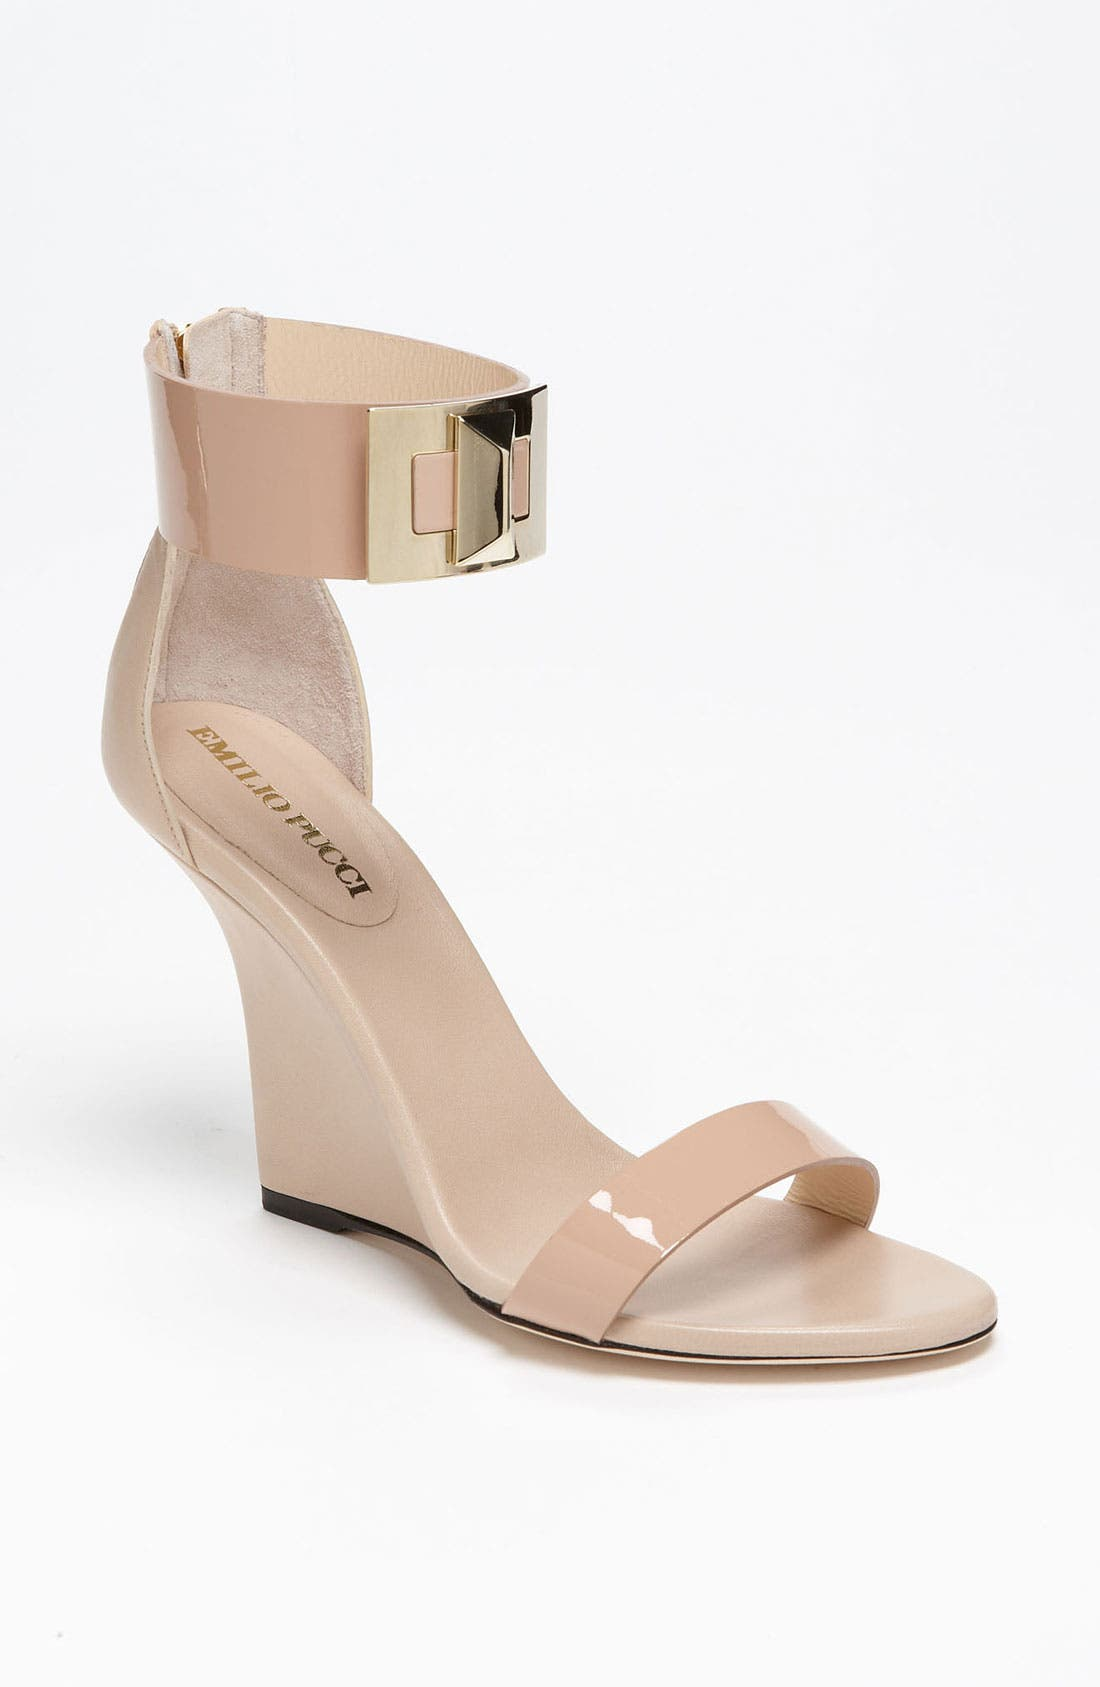 Main Image - Emilio Pucci 'Marquise' Wedge Sandal